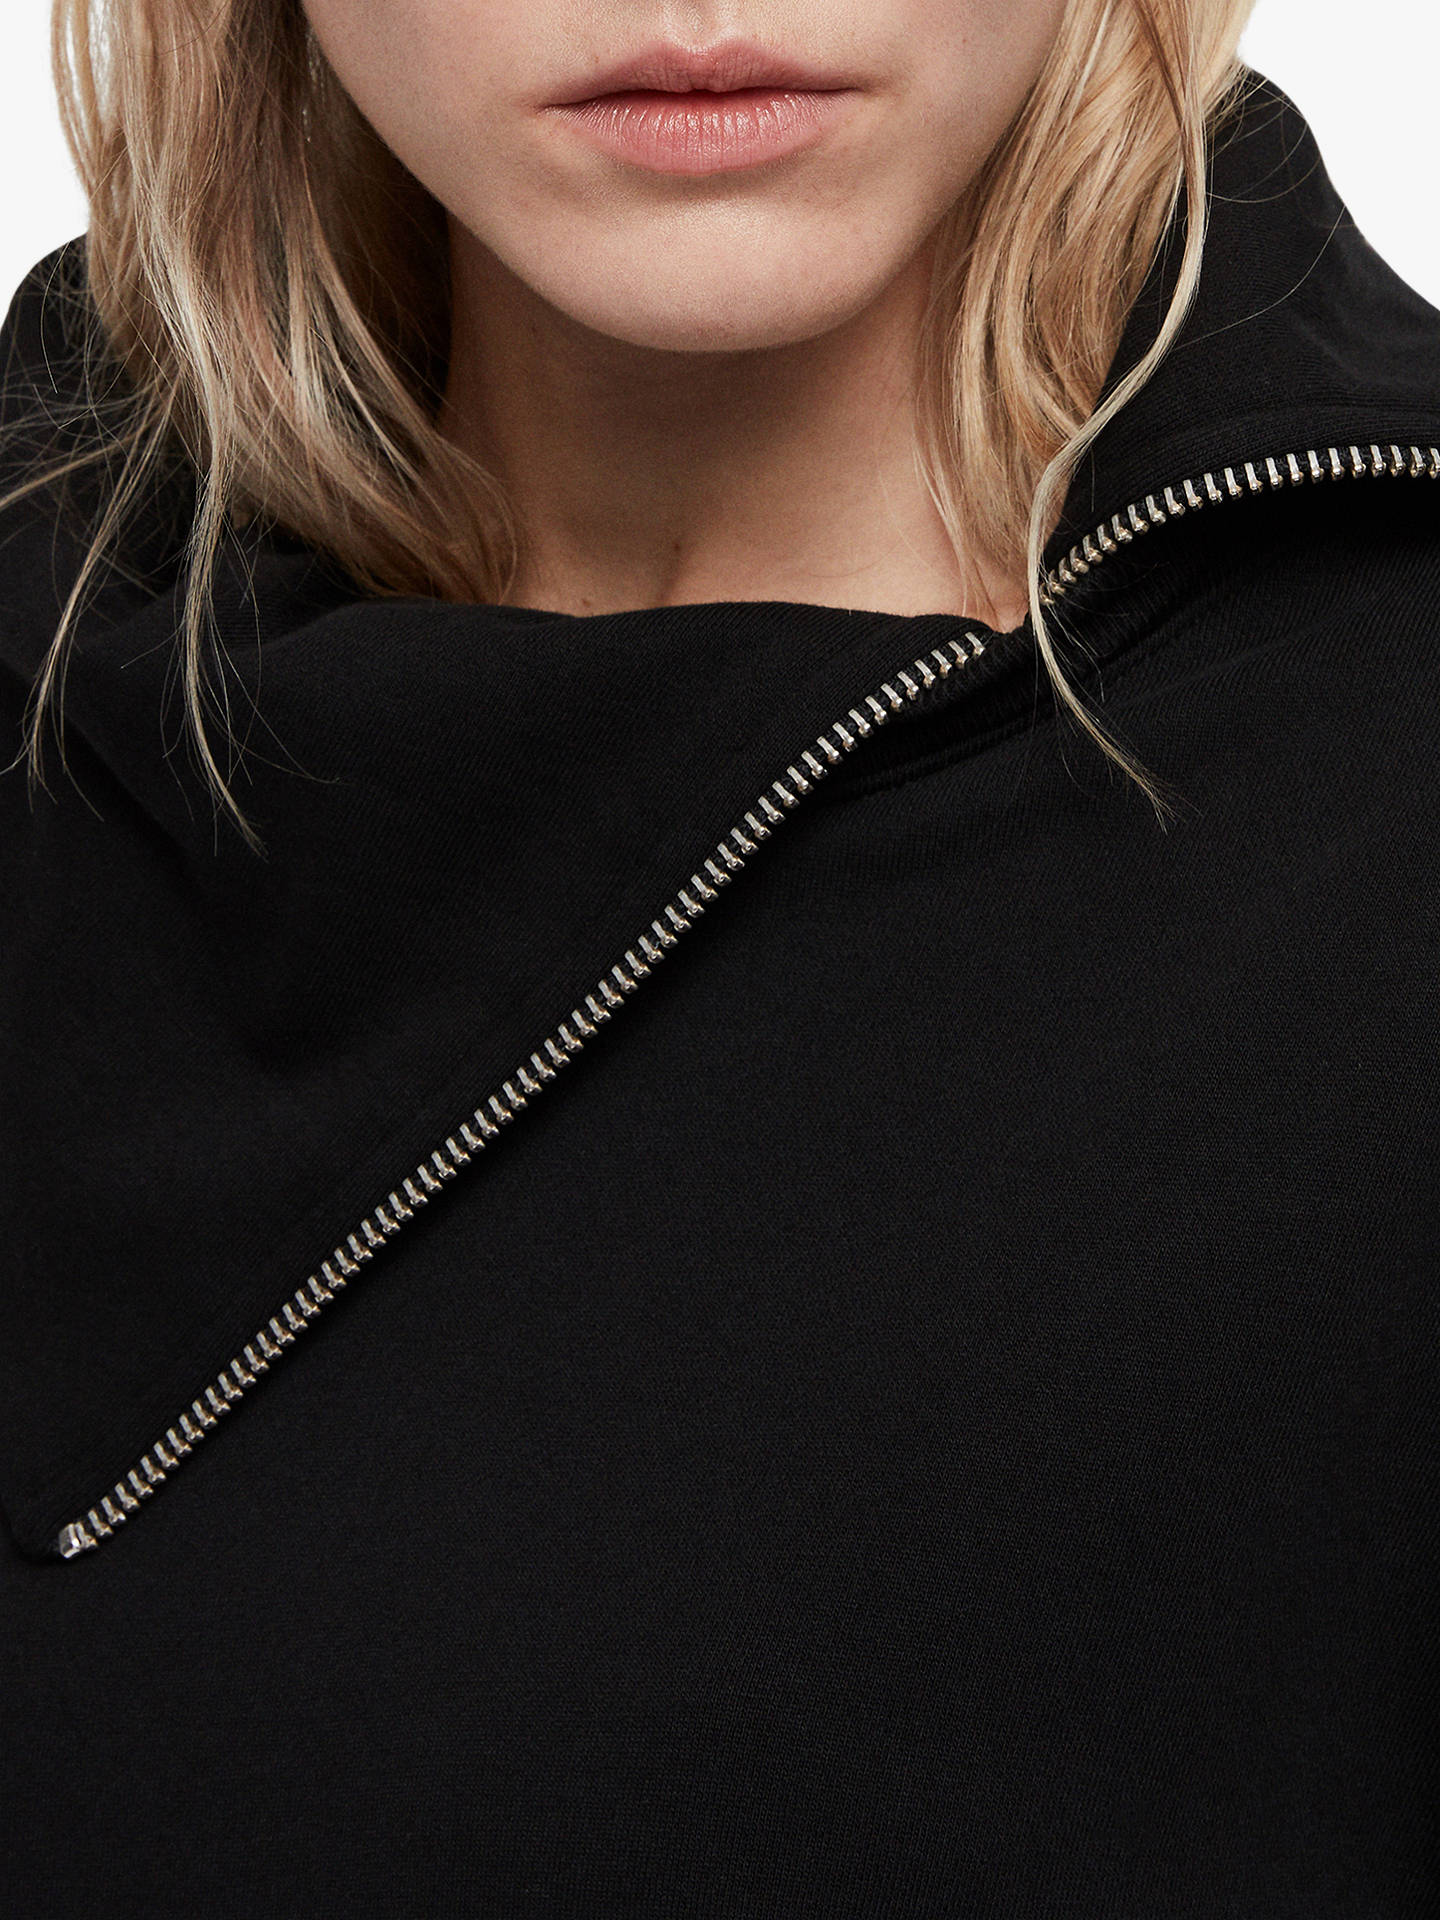 BuyAllSaints Bella Asymmetric Sweatshirt, Black, L Online at johnlewis.com